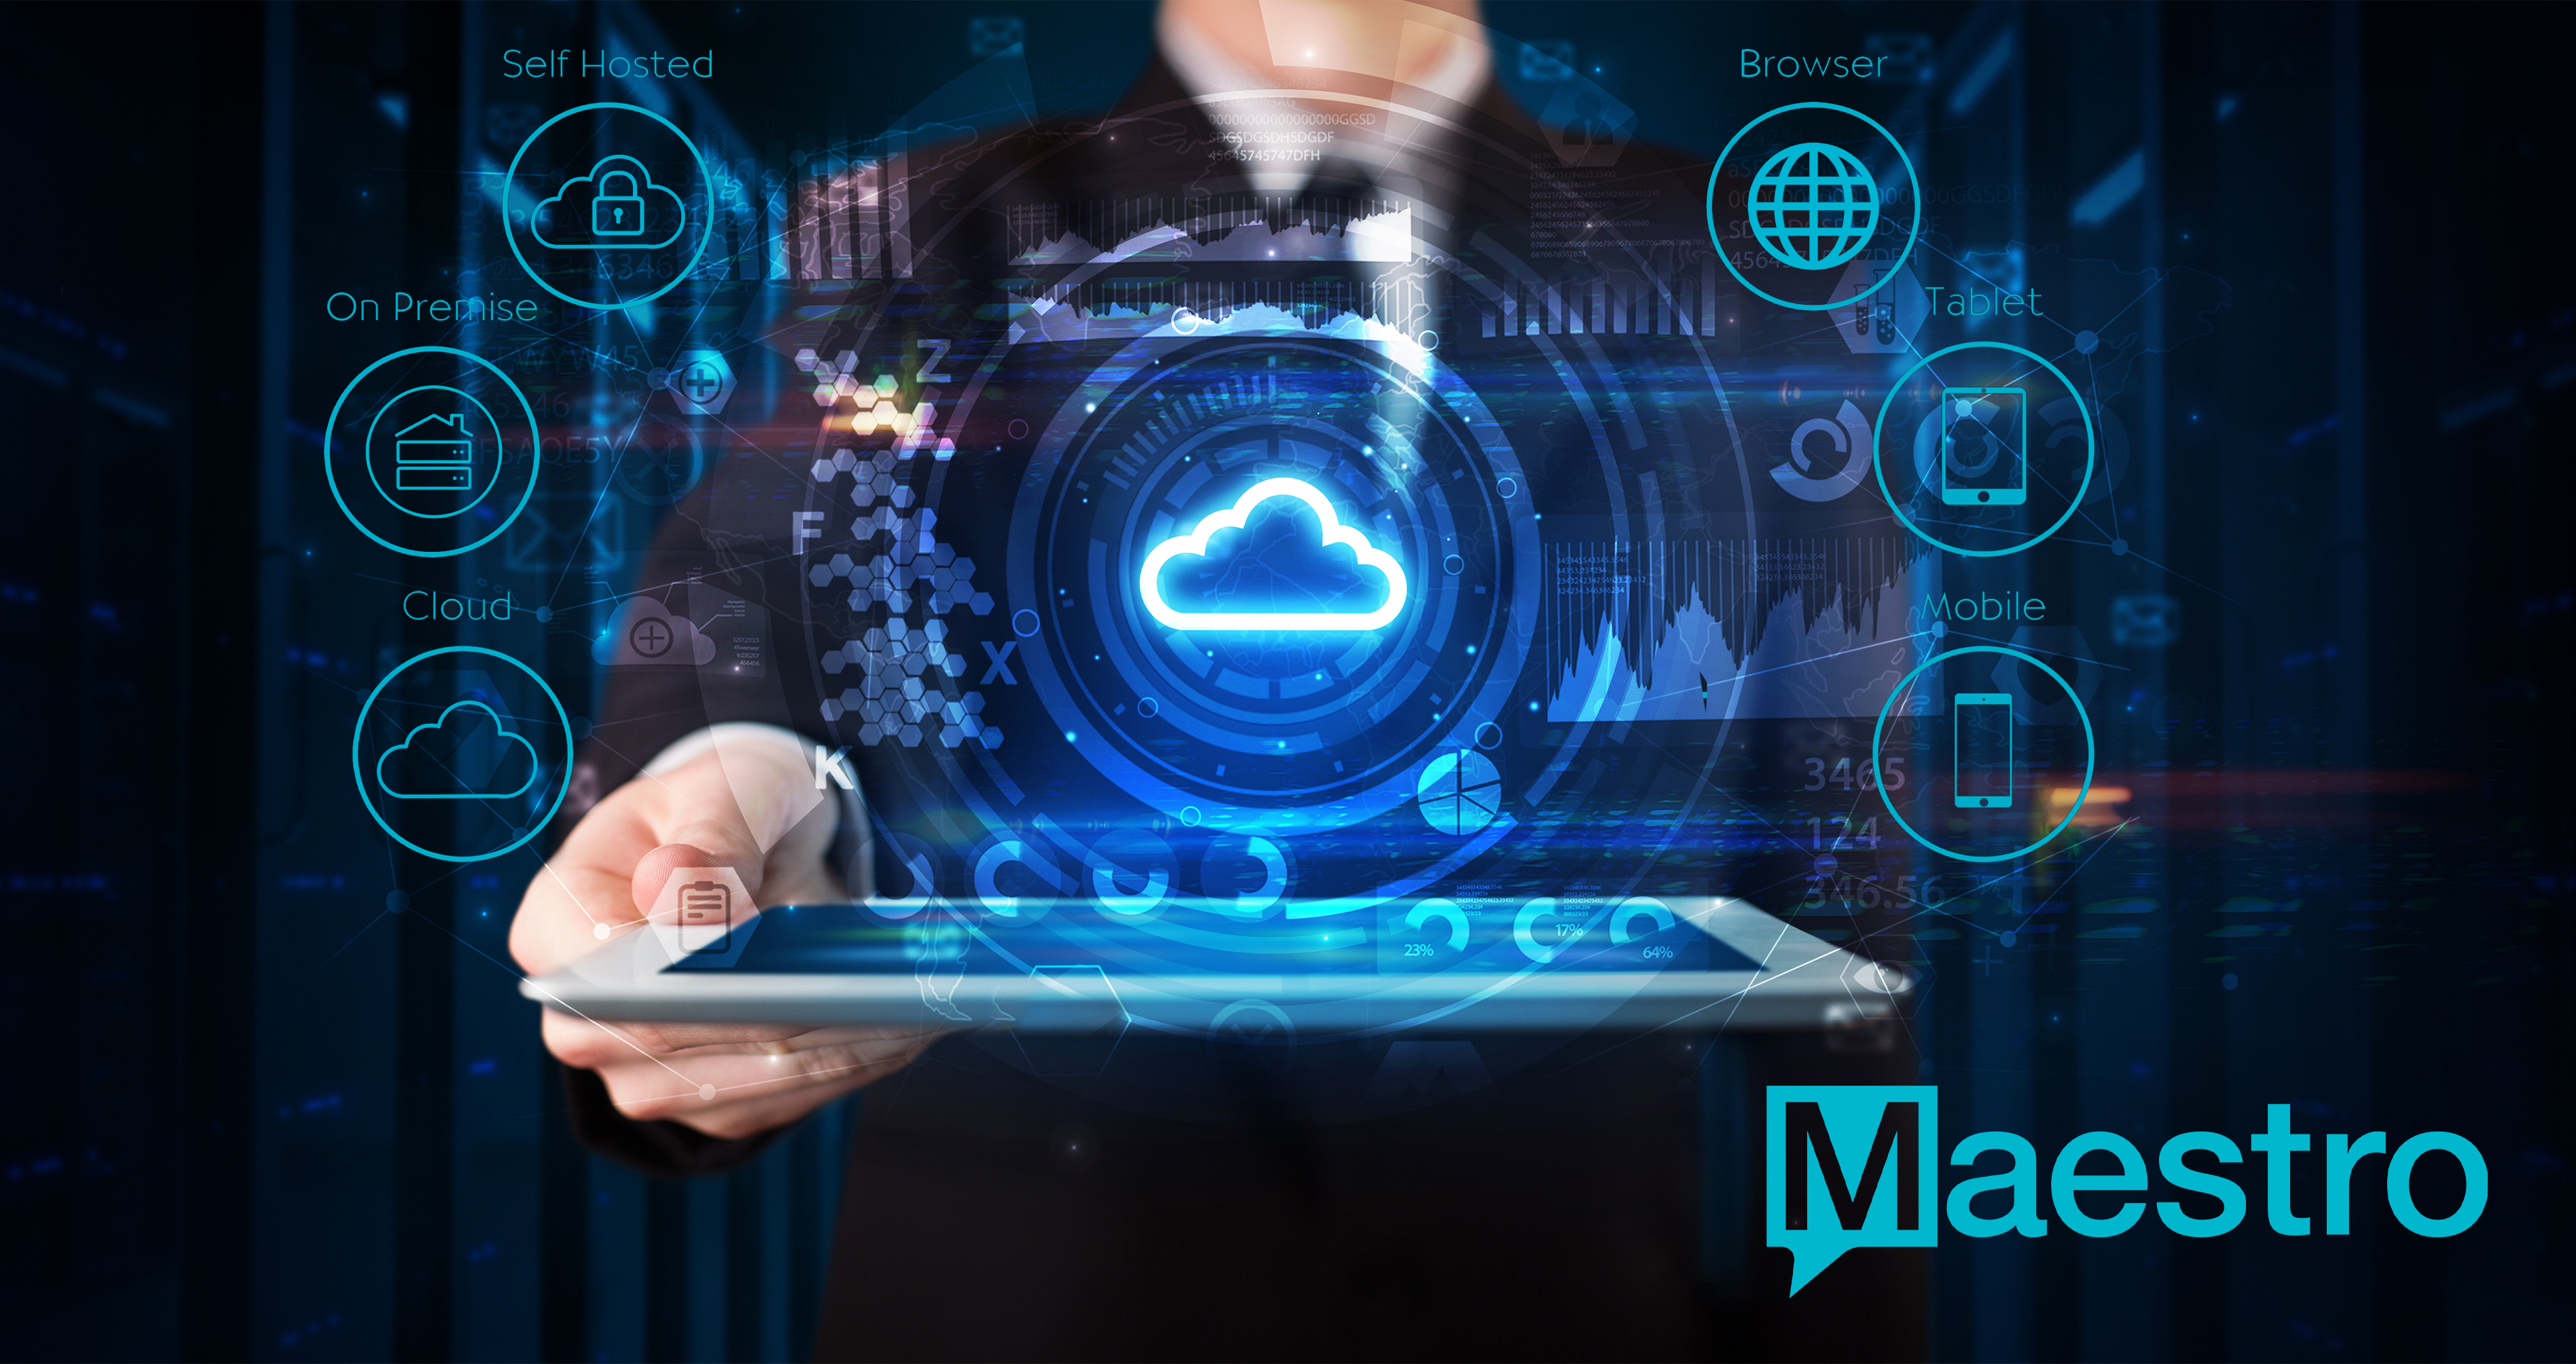 img1 - What Hoteliers Need to Know About Cloud-Based Technology and PMS - Innovative Property Management Software Solutions Powering Hotels, Resorts & Multi‑Property Groups.